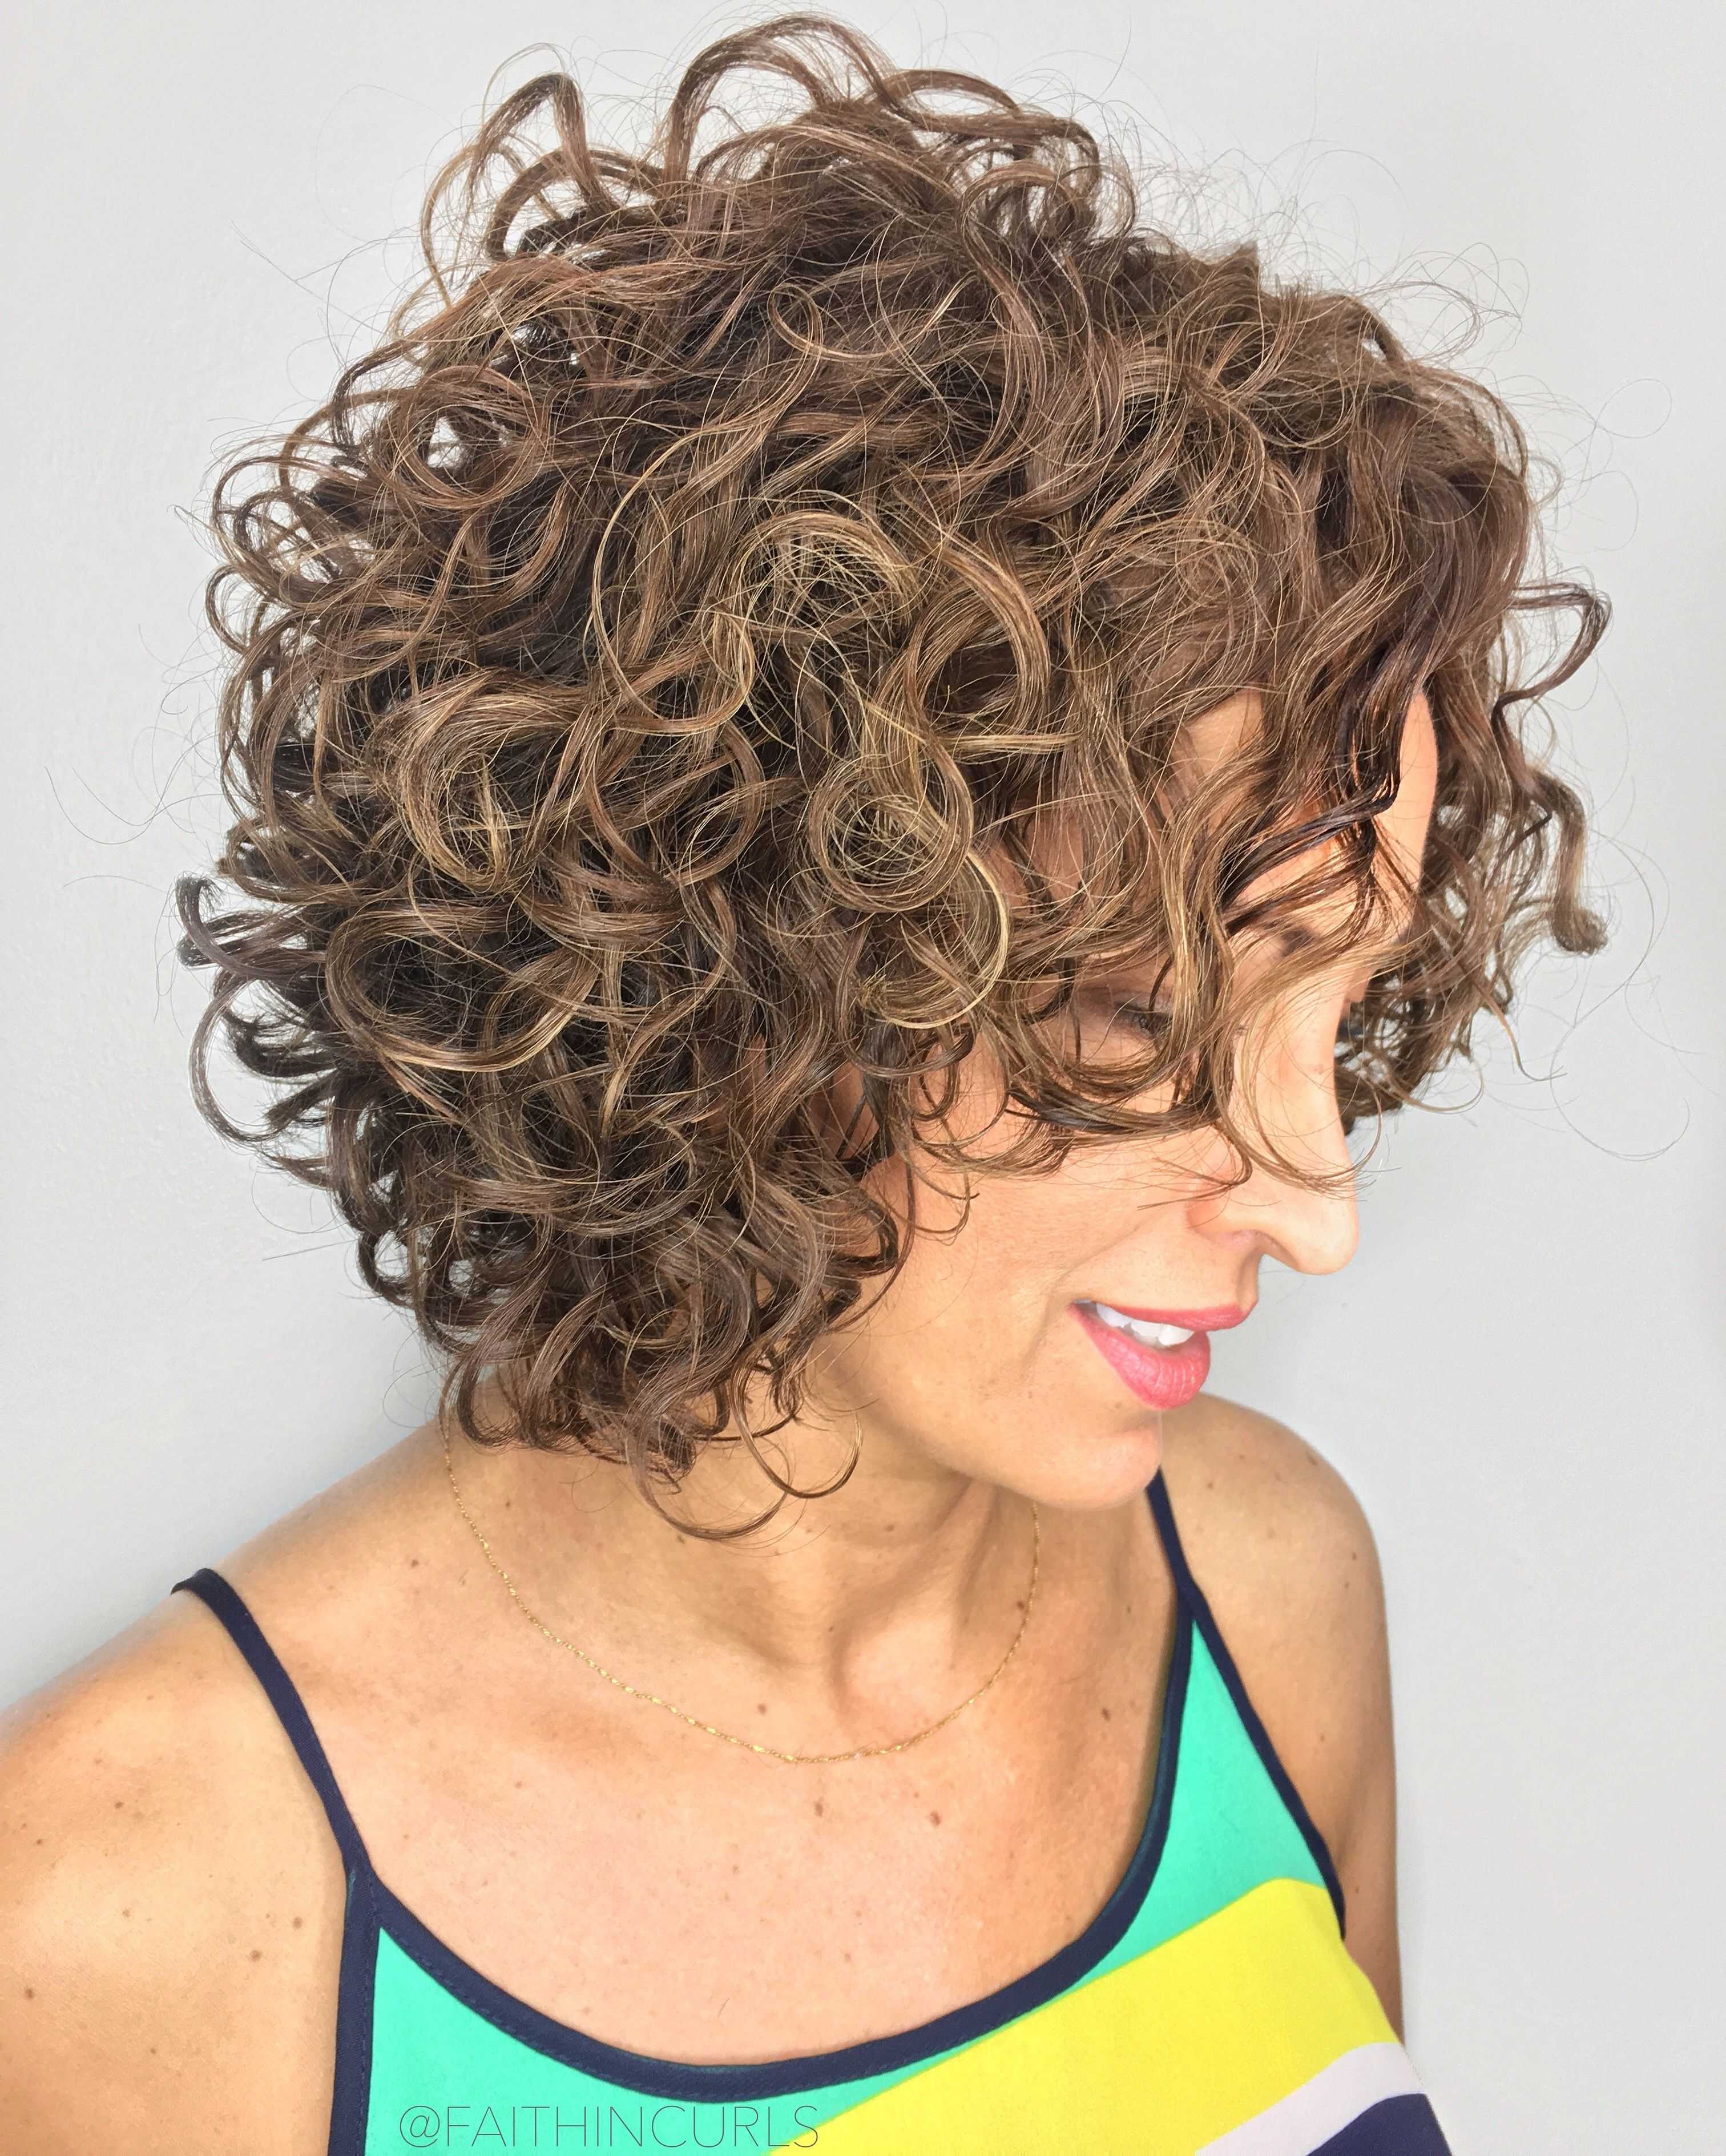 Pin By Jarely On Curly Haircut Curly Hair Styles Naturally Curly Hair Photos Curly Hair Styles